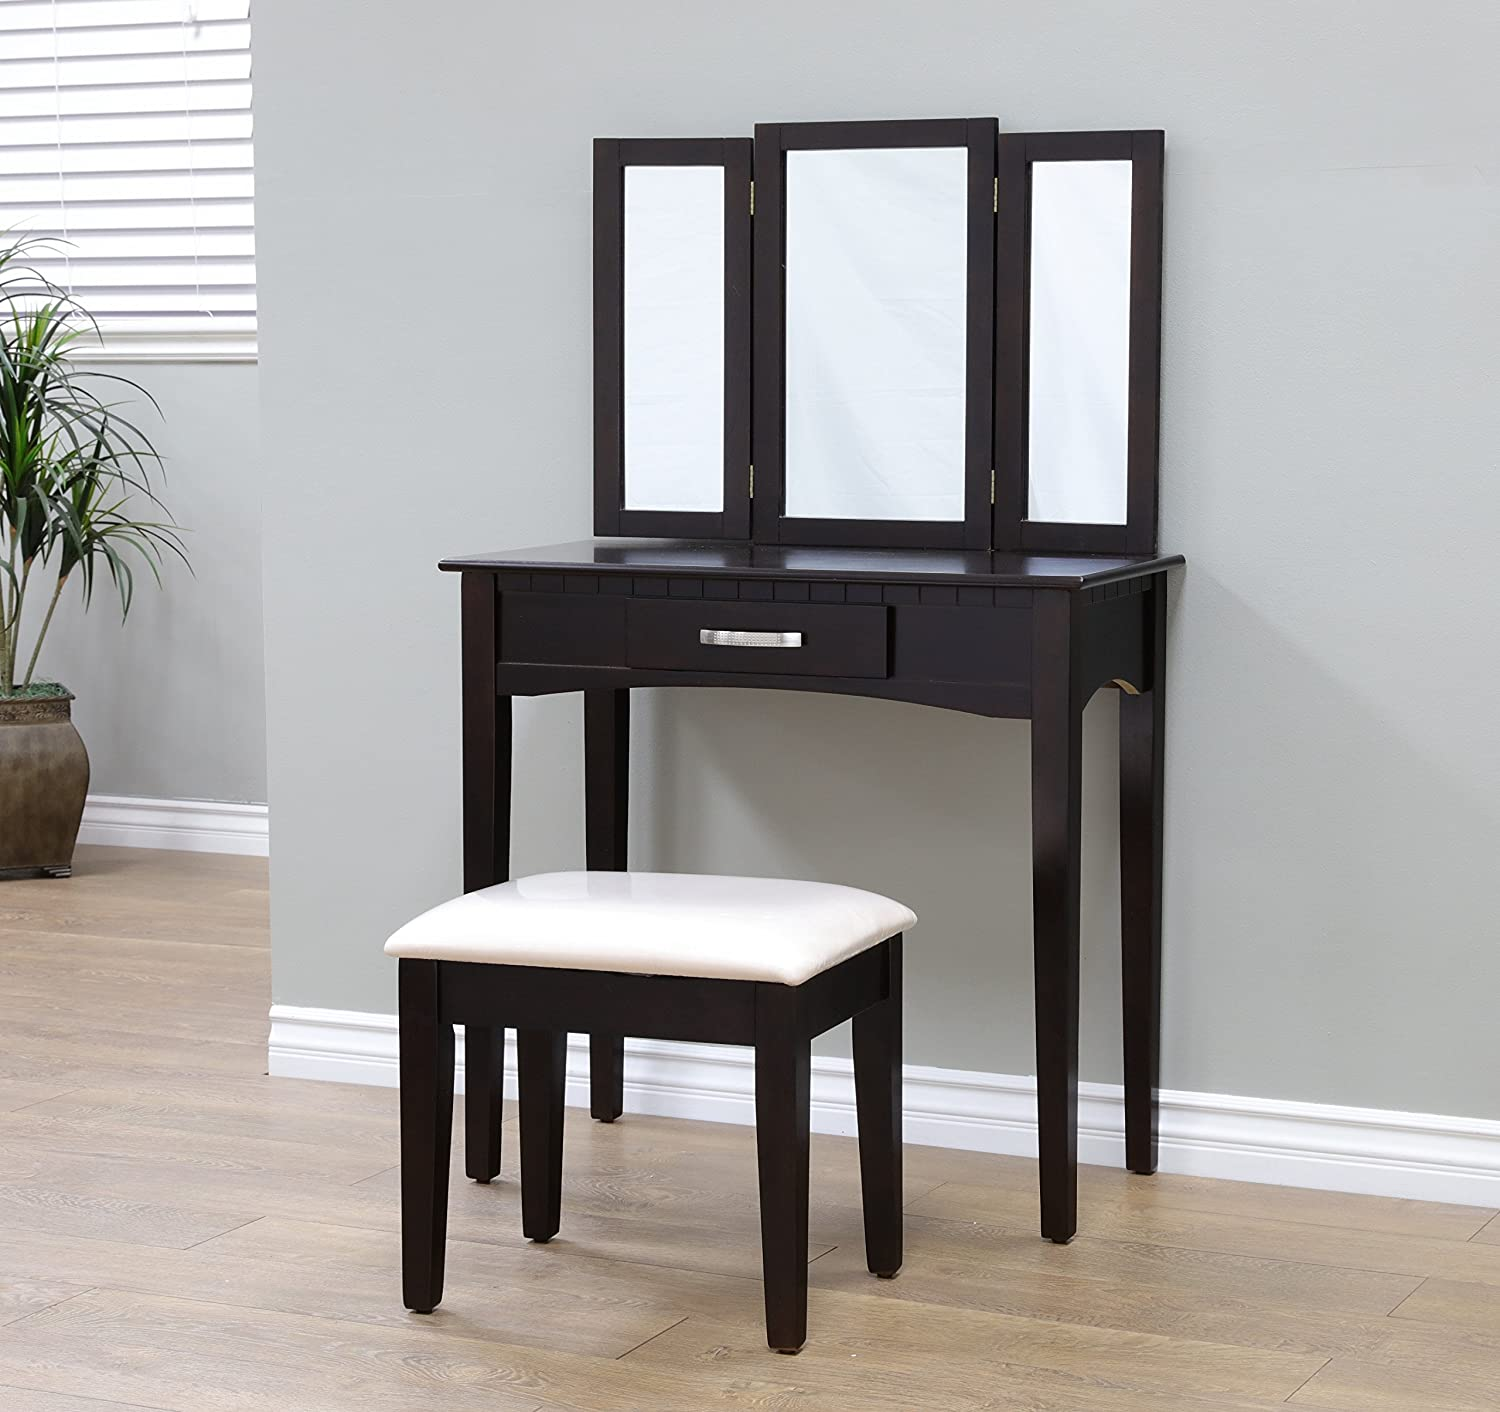 Vanity tables under 100 vanity table with mirror frenchi home furnishing 2 piece home furnishing stool set vanity espresso geotapseo Images